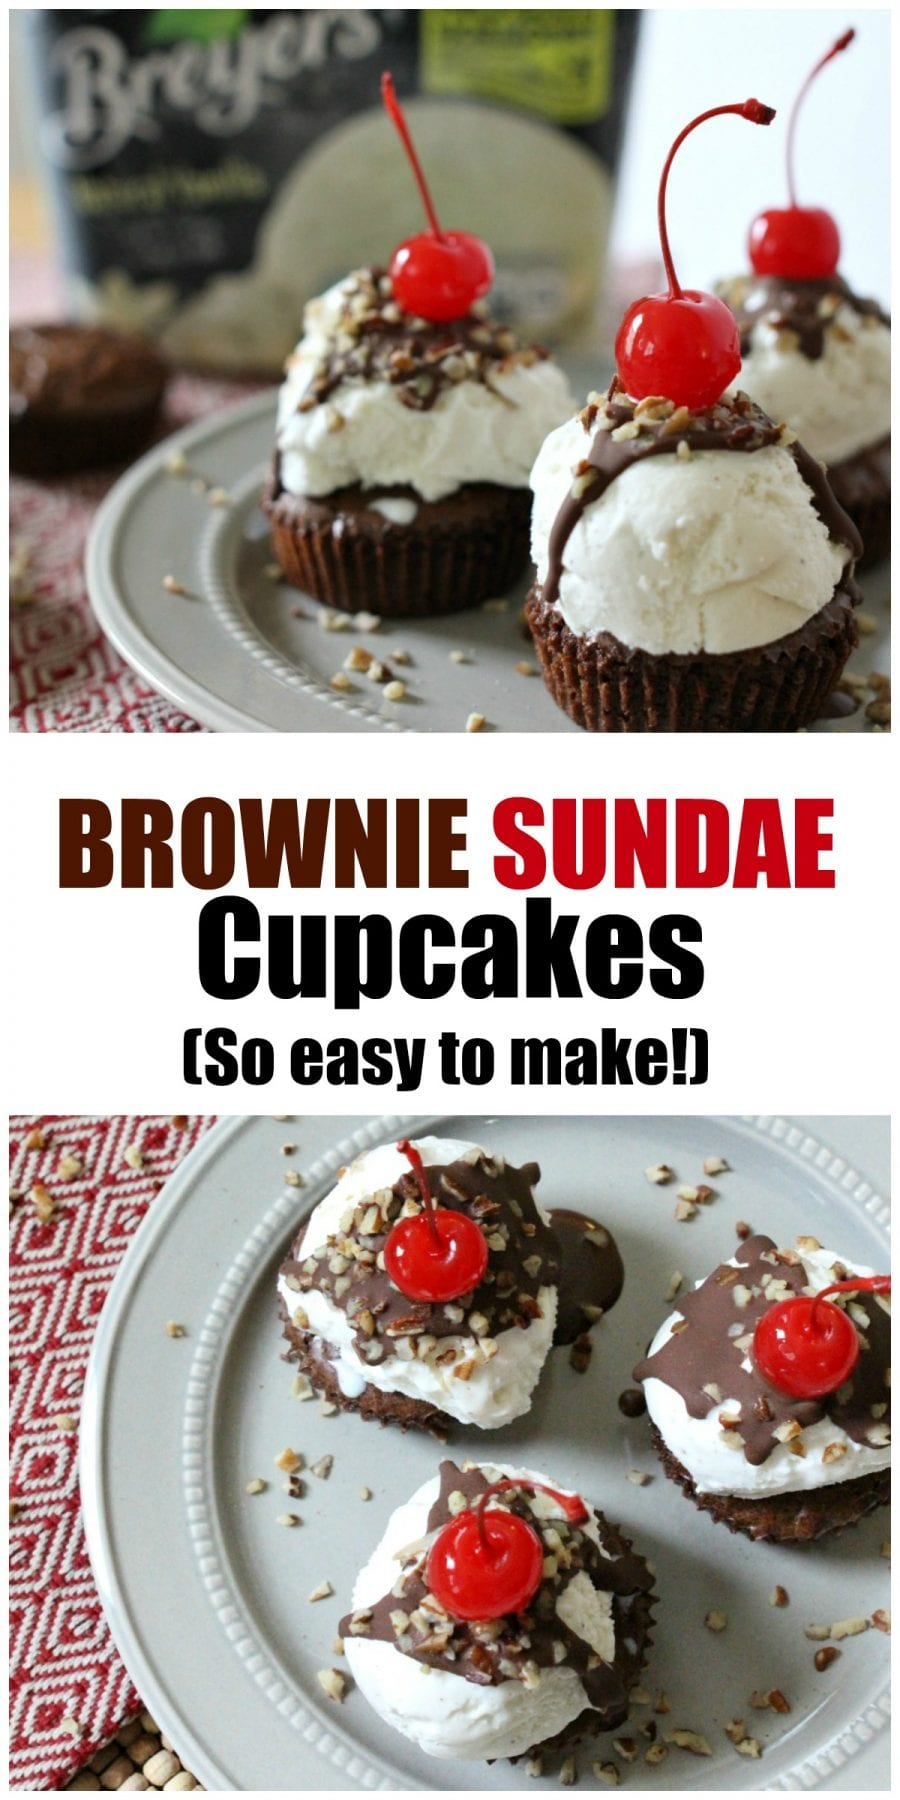 From Birthday parties and get-togethers with friends, to just because moments, these Brownie Sundae Cupcakes are sure to be a big hit. Plus, they are super easy to make!